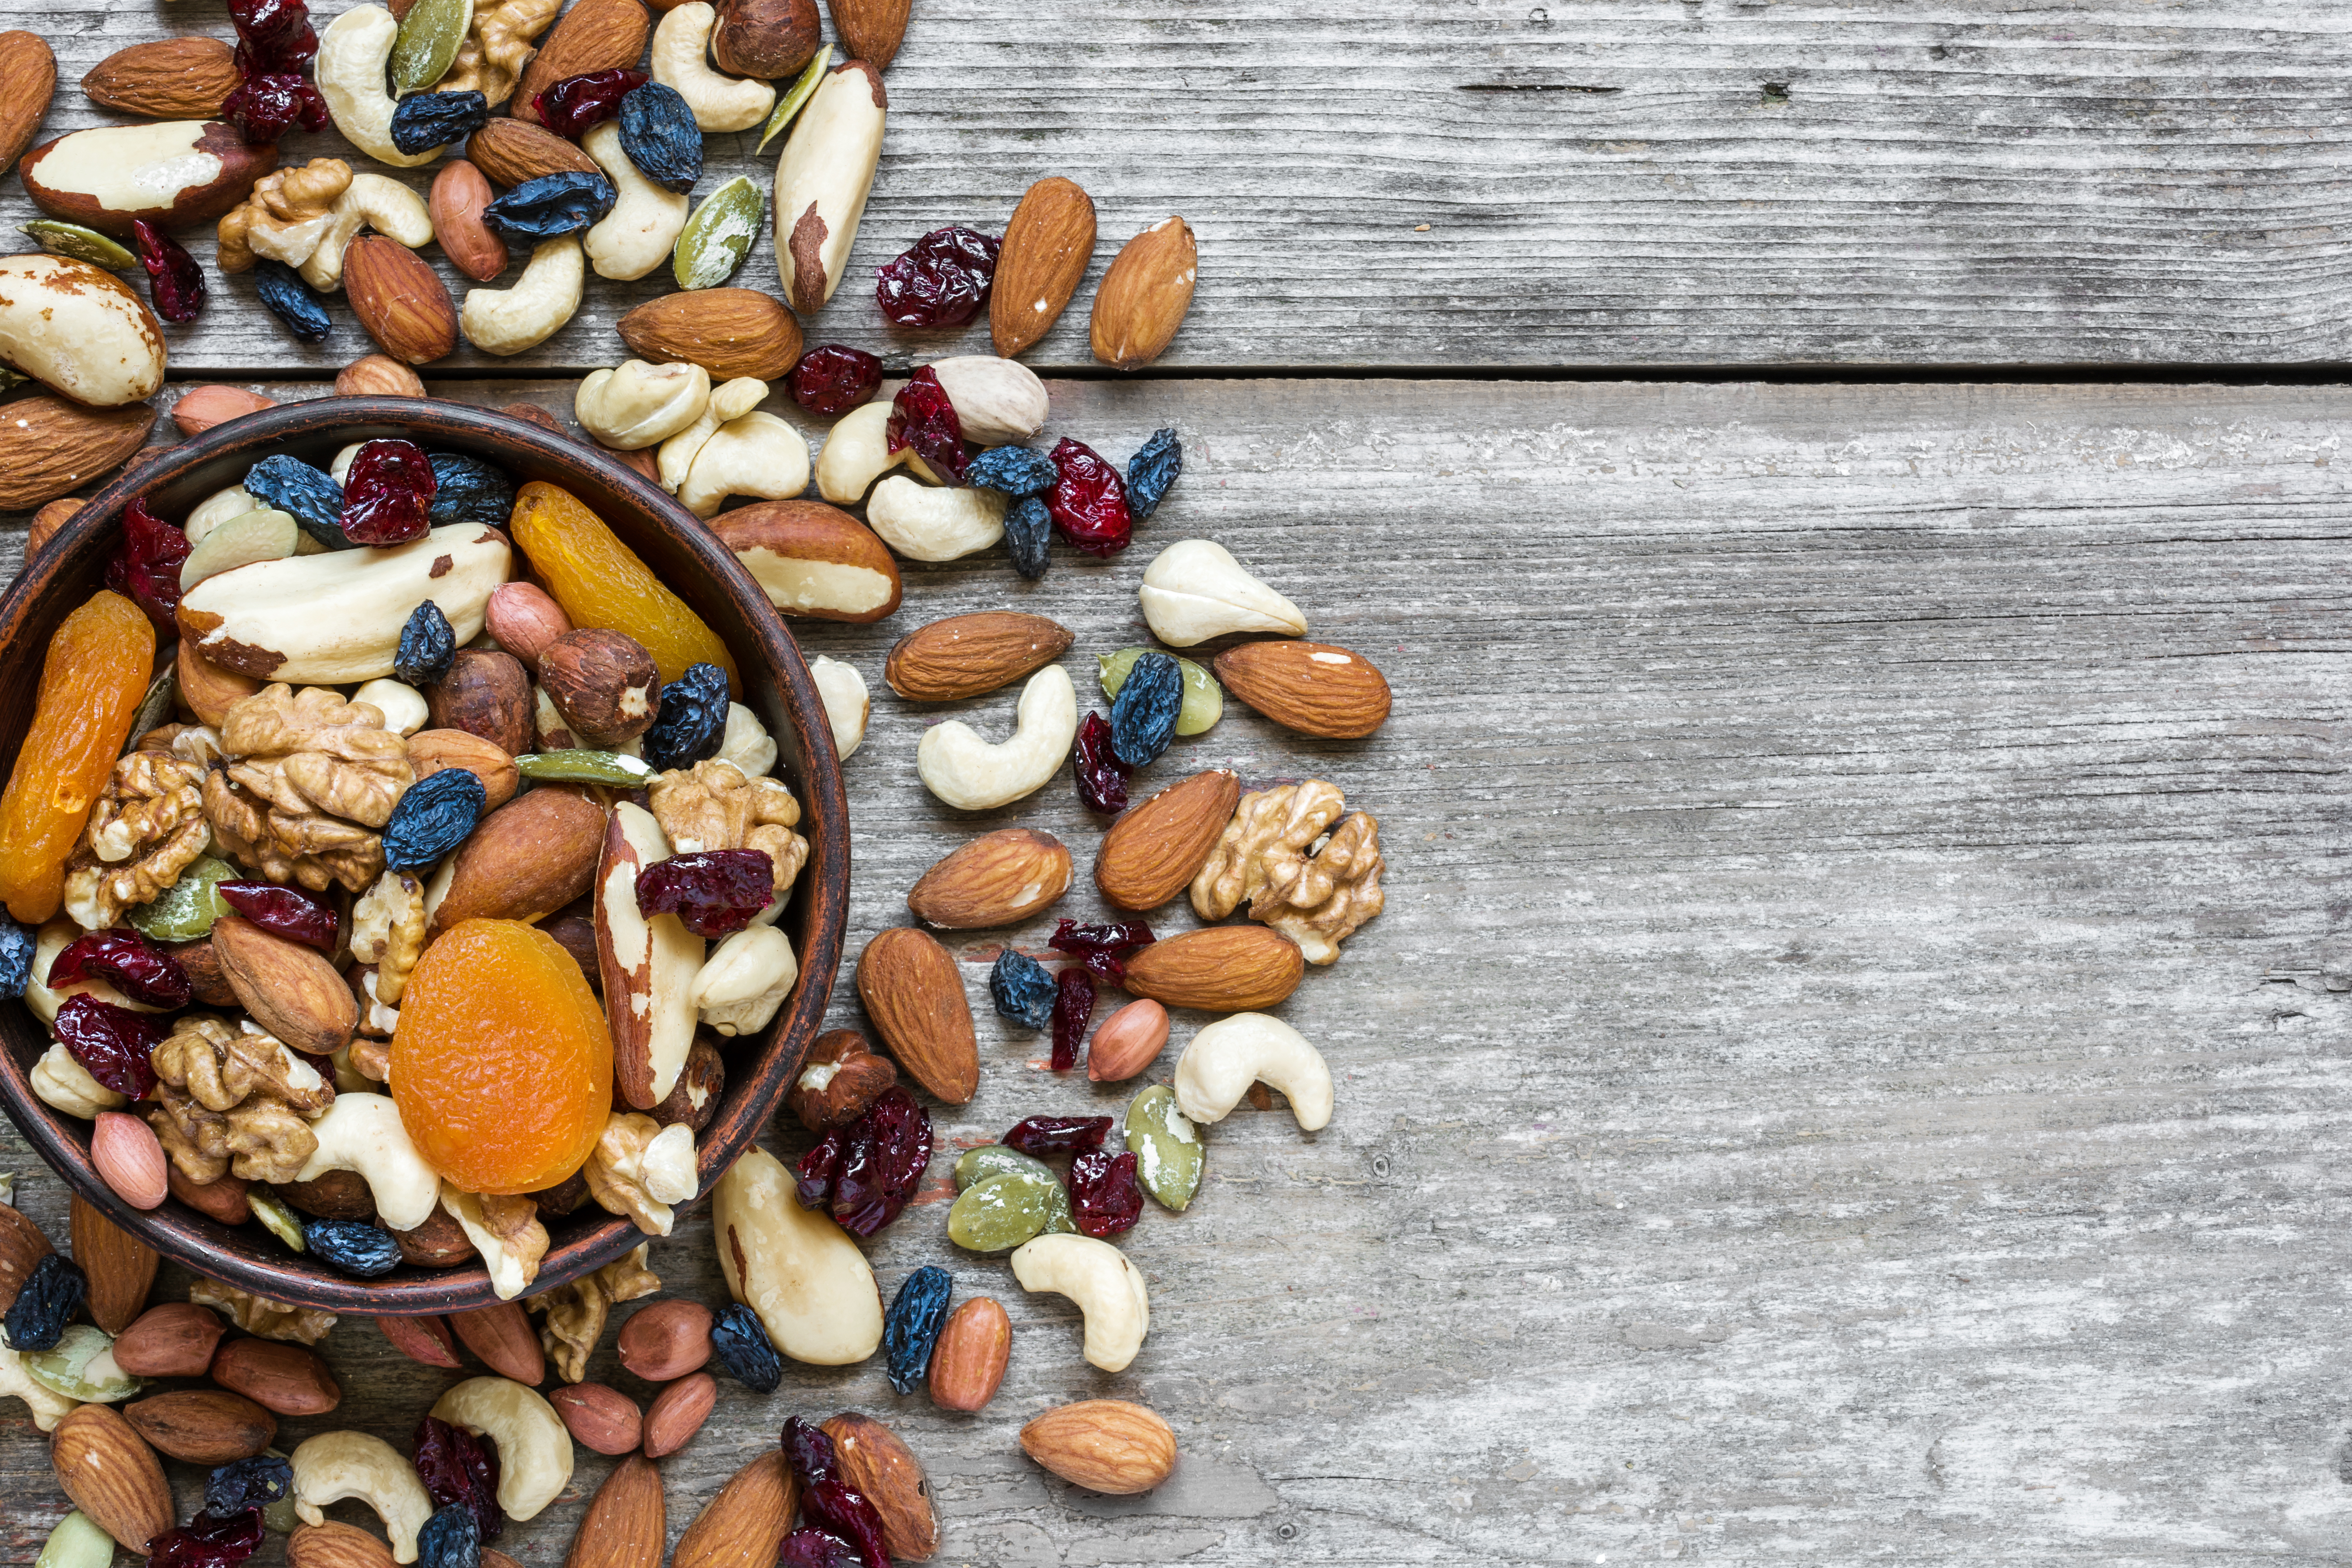 Does Eating Lot of Almonds Make You Fat? | Healthy Eating | SF Gate